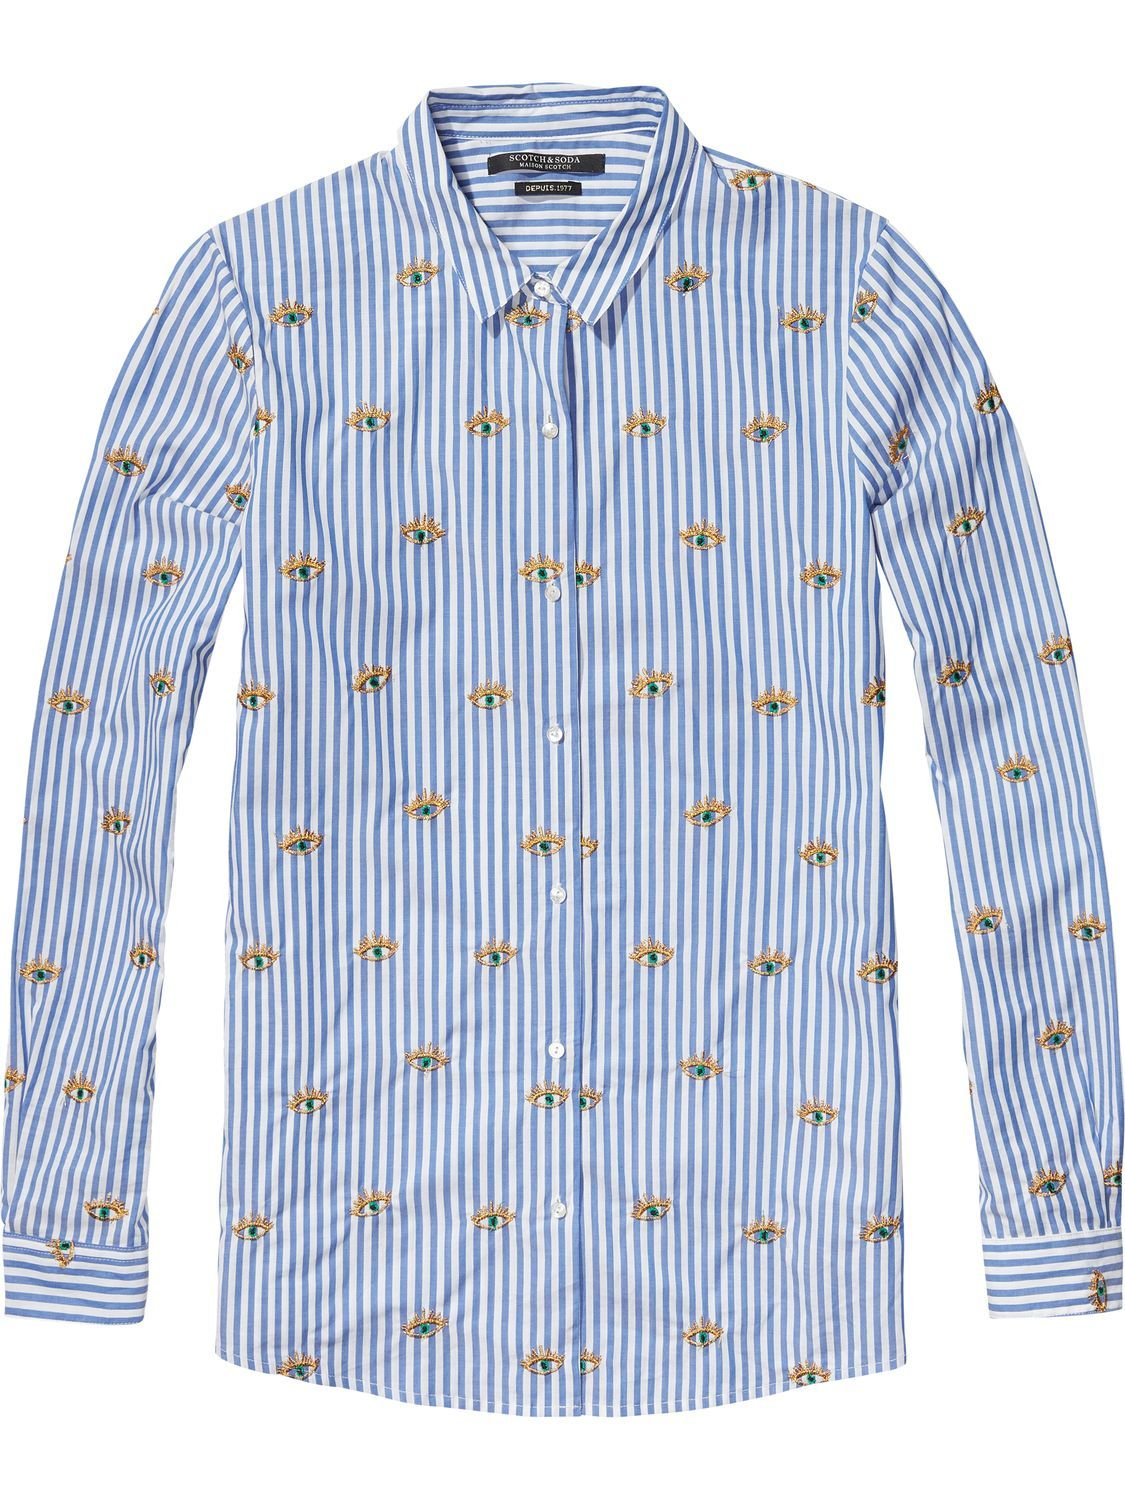 Now available: Embroidered Shirt Scotch & Soda